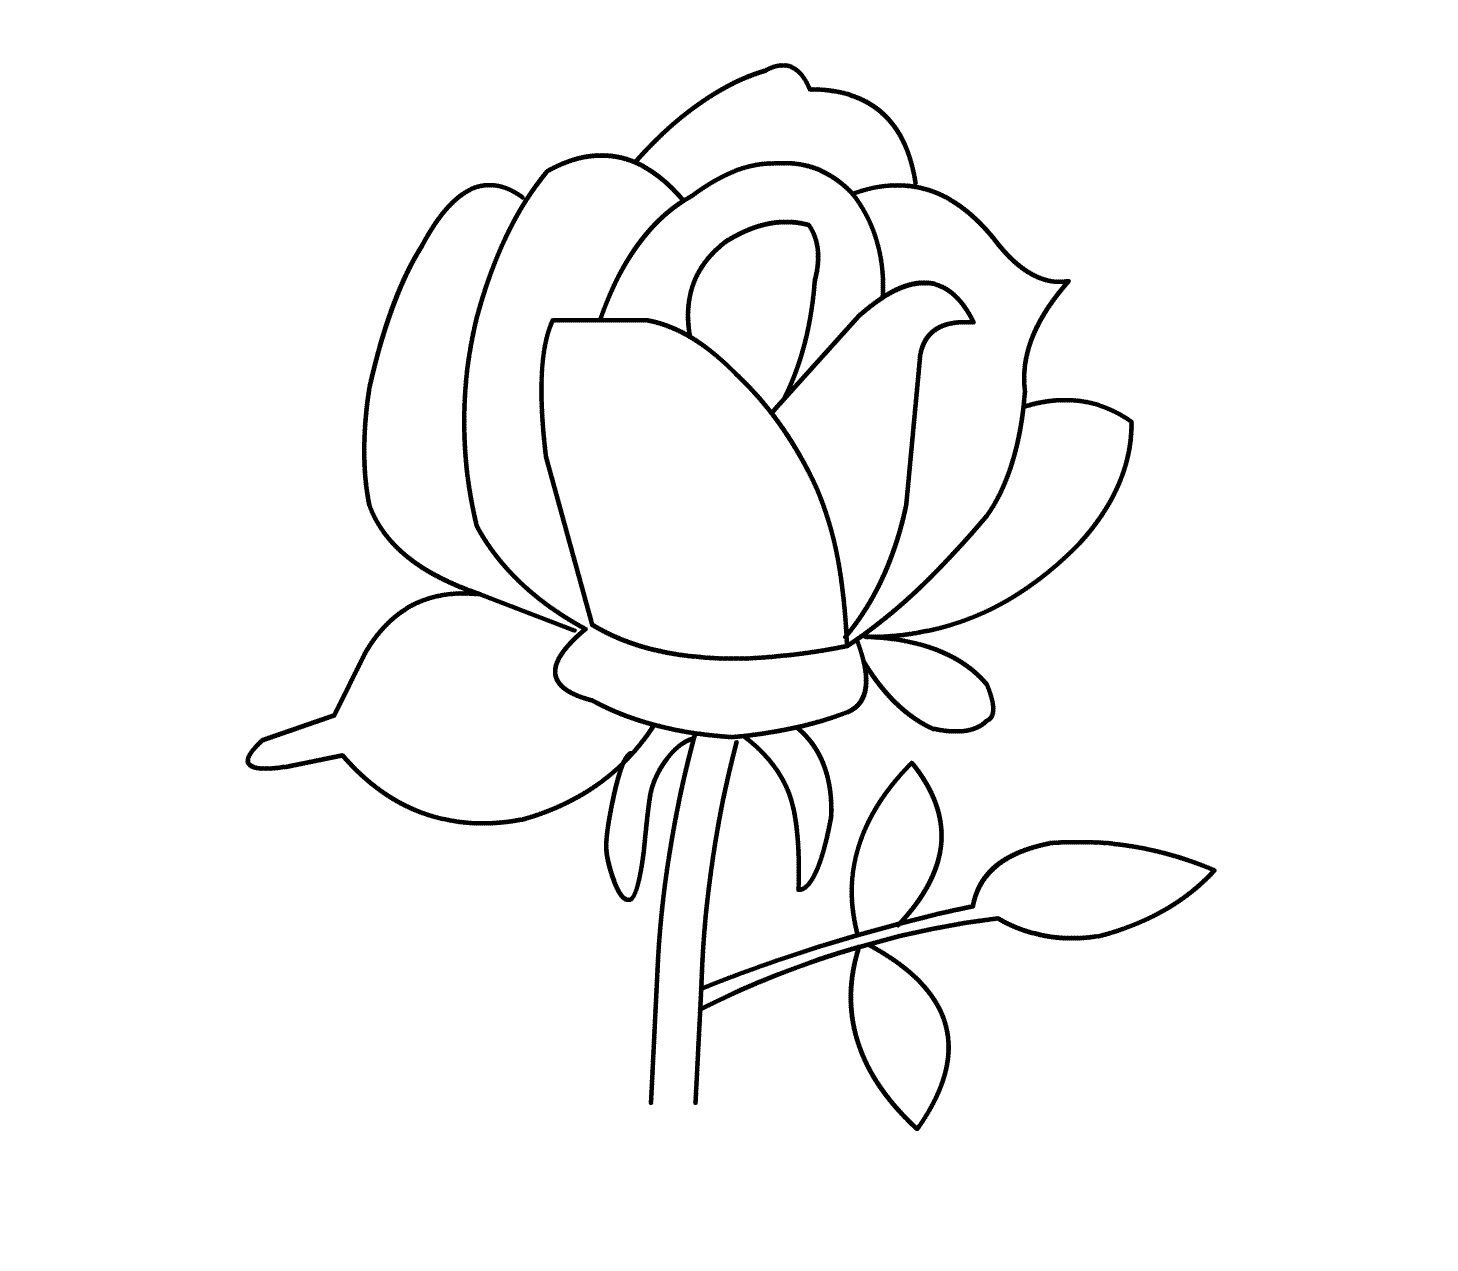 rose colouring pages roses coloring pages getcoloringpagescom pages rose colouring